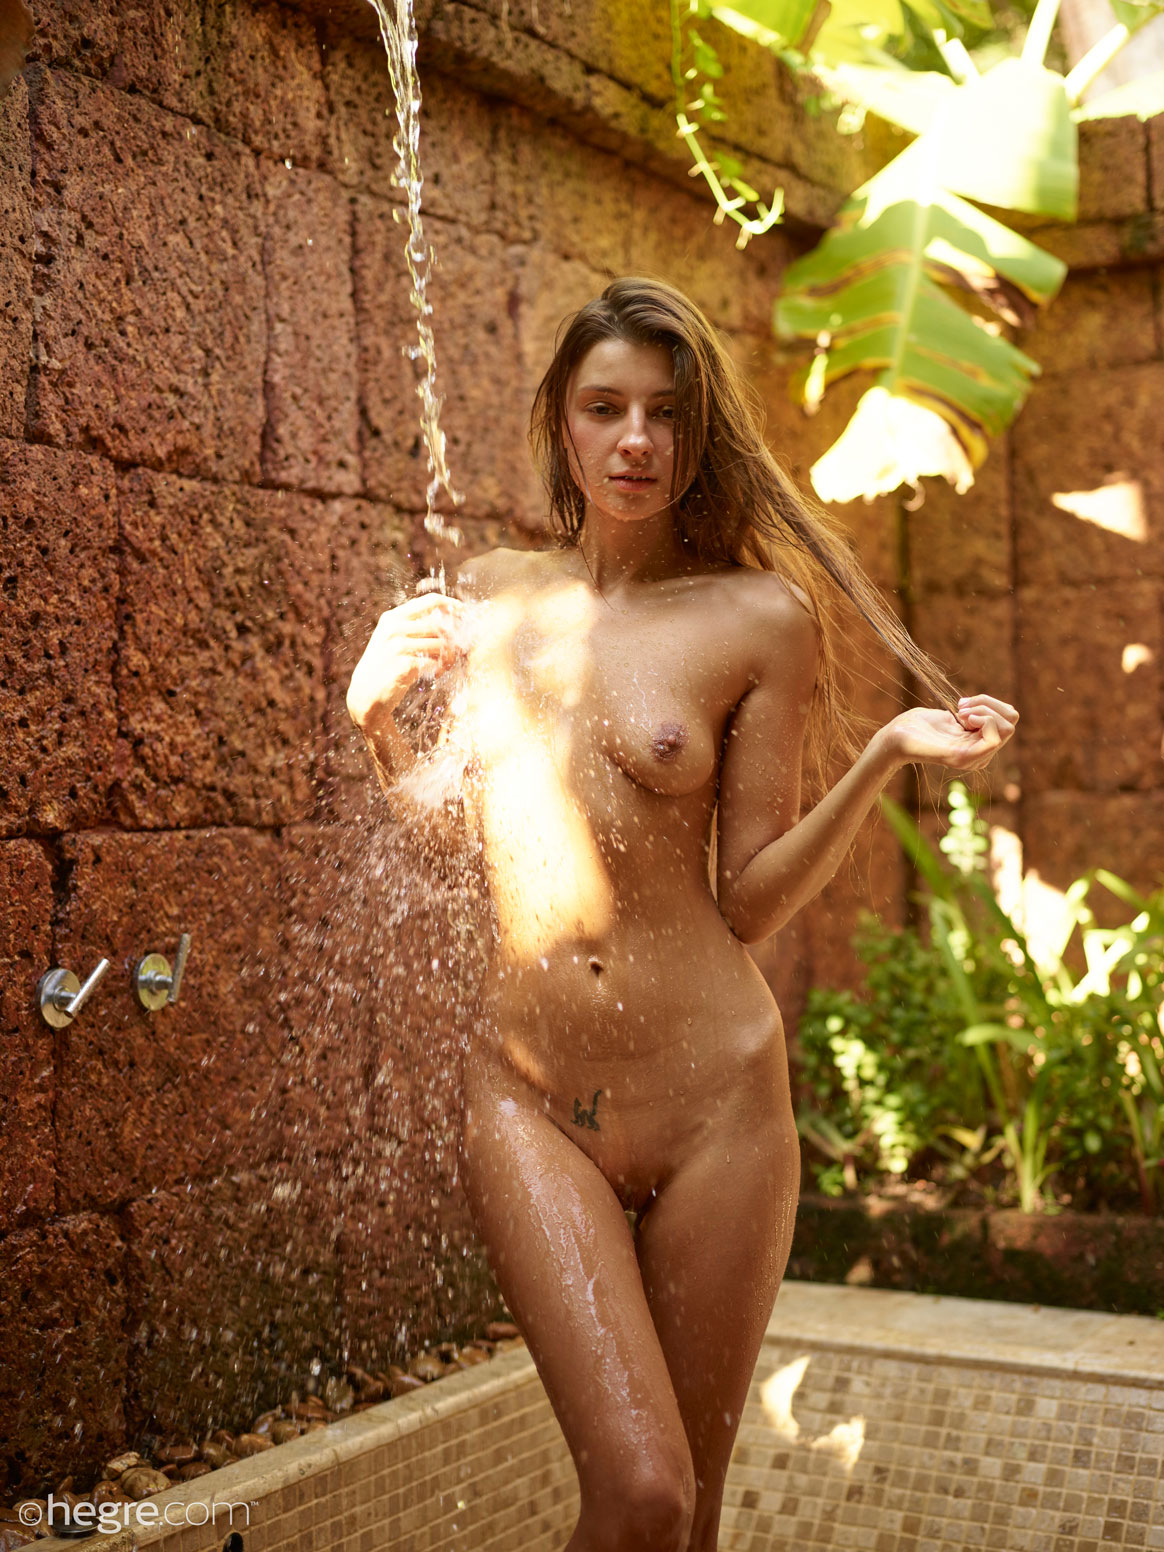 Opinion you nude outdoor shower room photoes excellent words